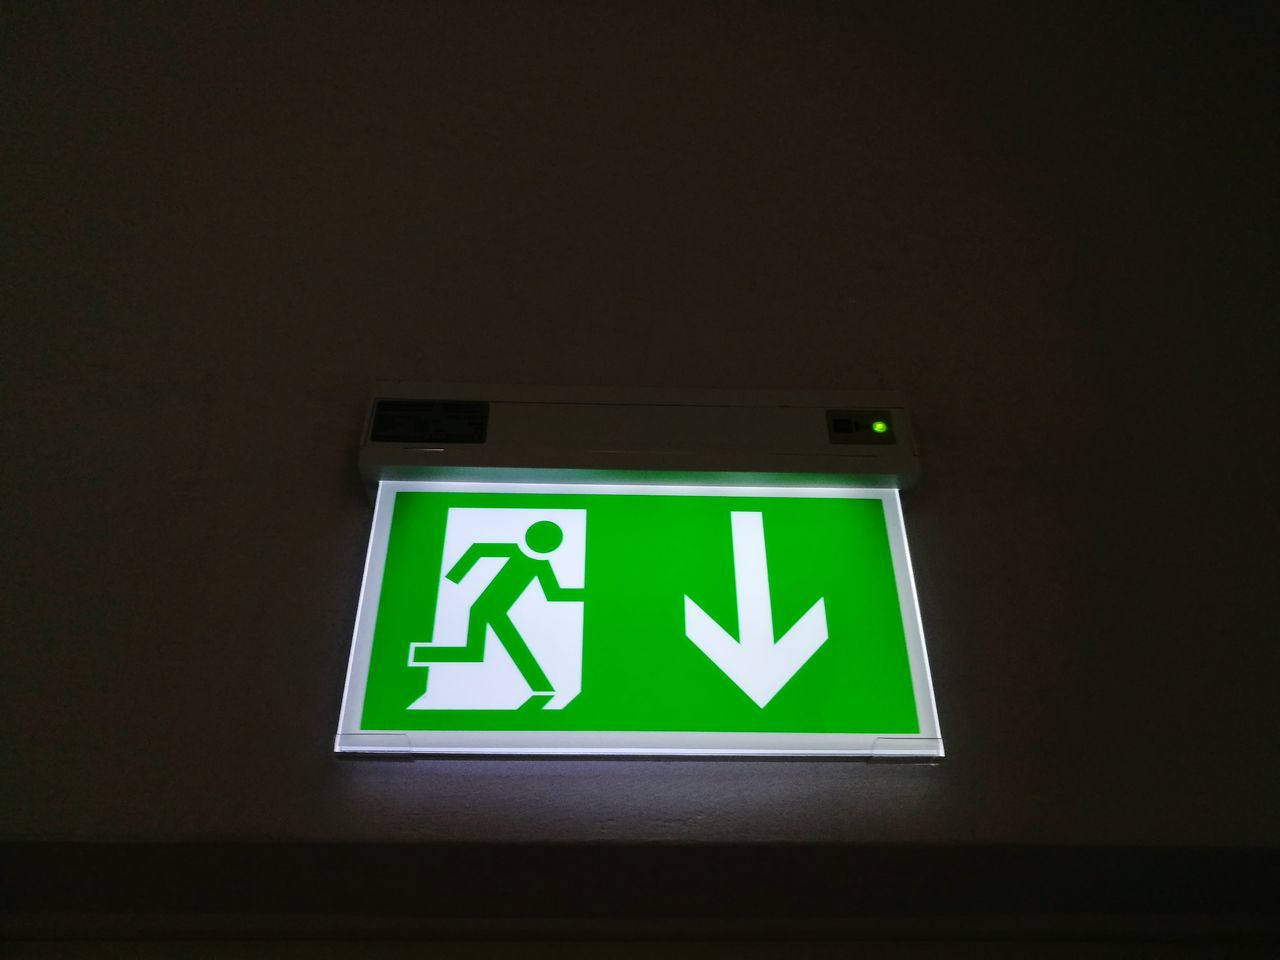 Directional Sign Exit Sign Emergency Exit Safety Arrow Symbol Guidance Urgency Green Color Illuminated Danger Leaving Protection Advice Communication Instructions Get Out